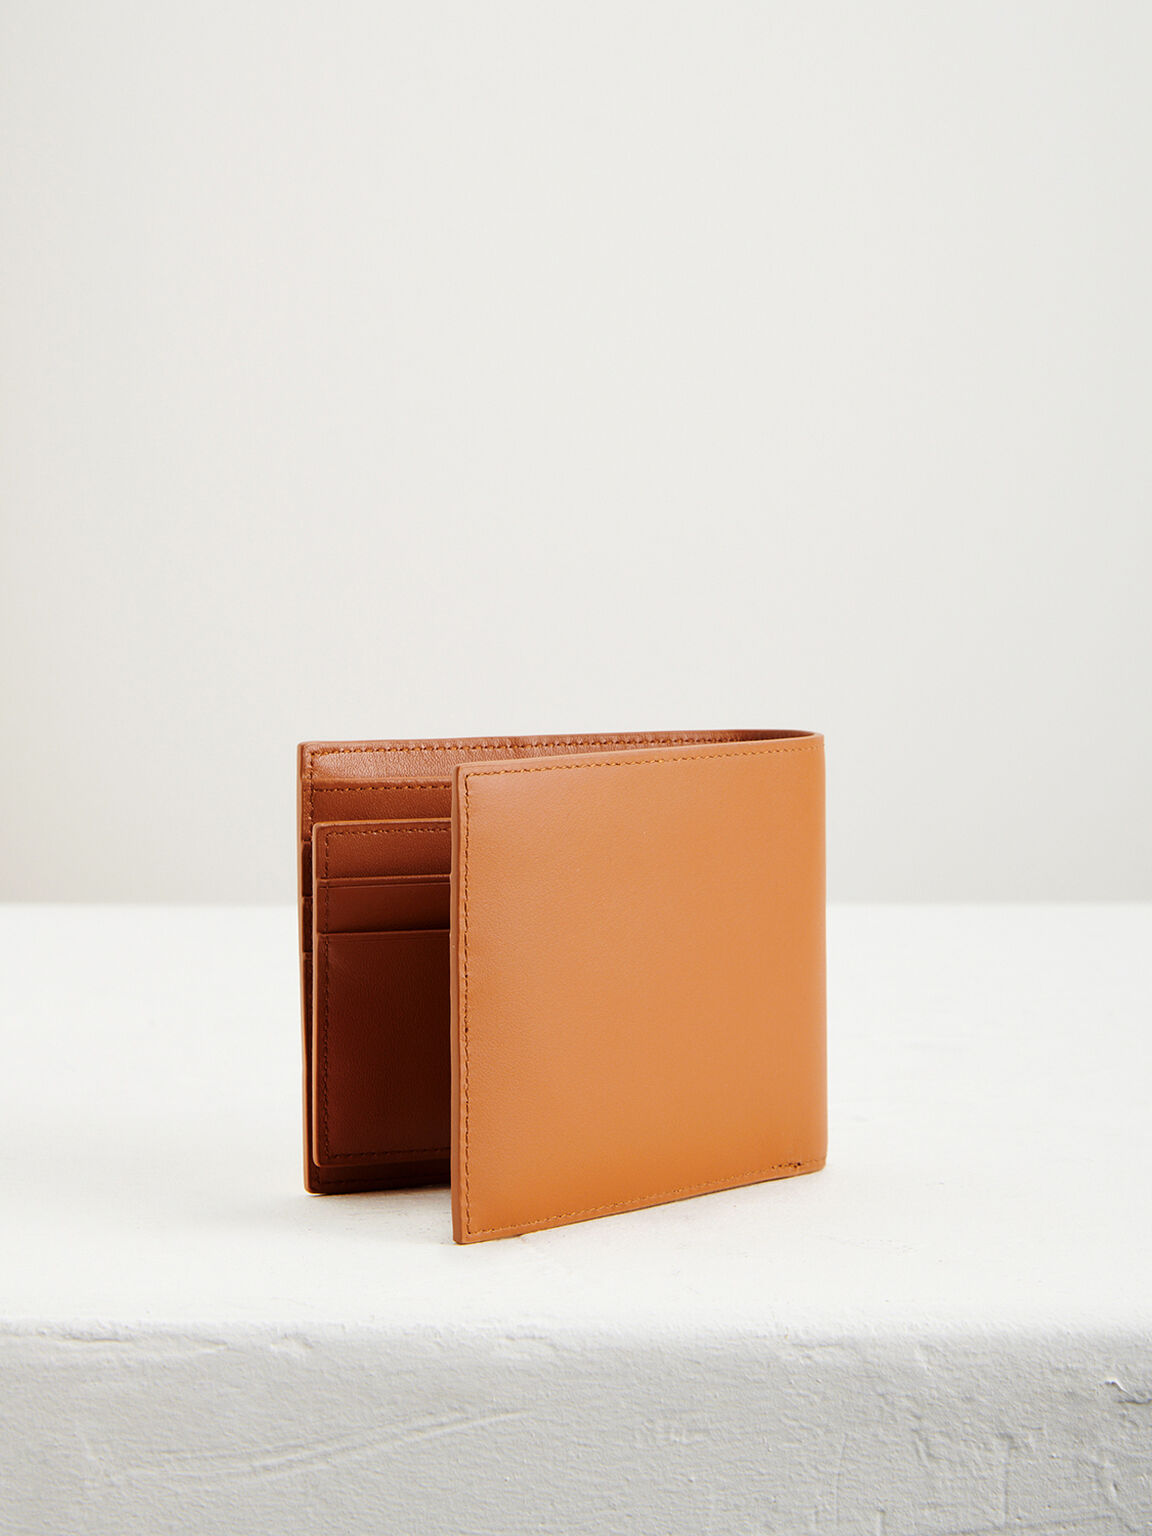 Colorblock Leather Wallet with Insert, Multi, hi-res